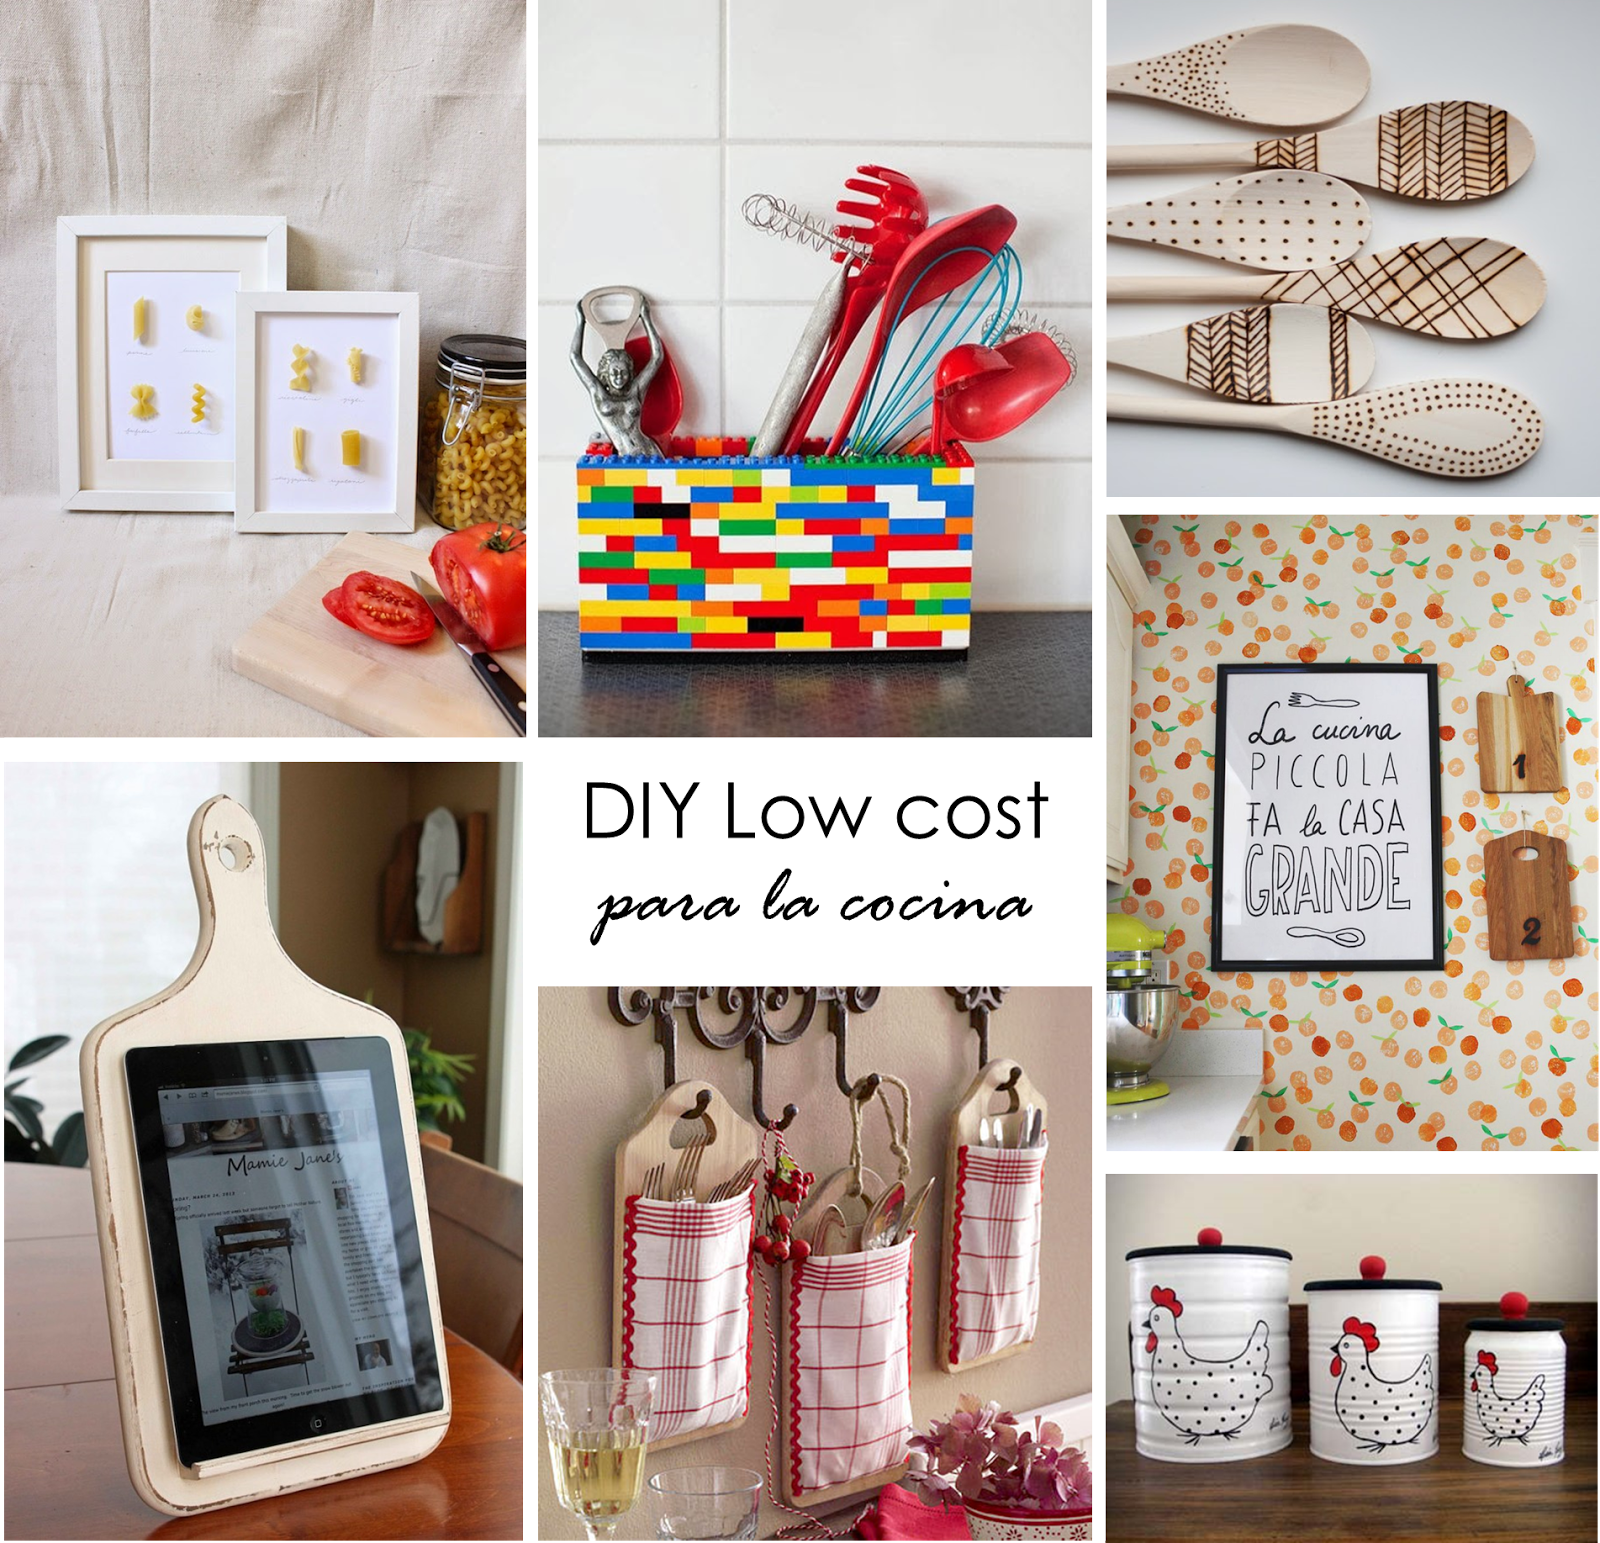 Small lowcost 8 ideas diy para tu cocina decorar tu for Tips para decorar tu casa